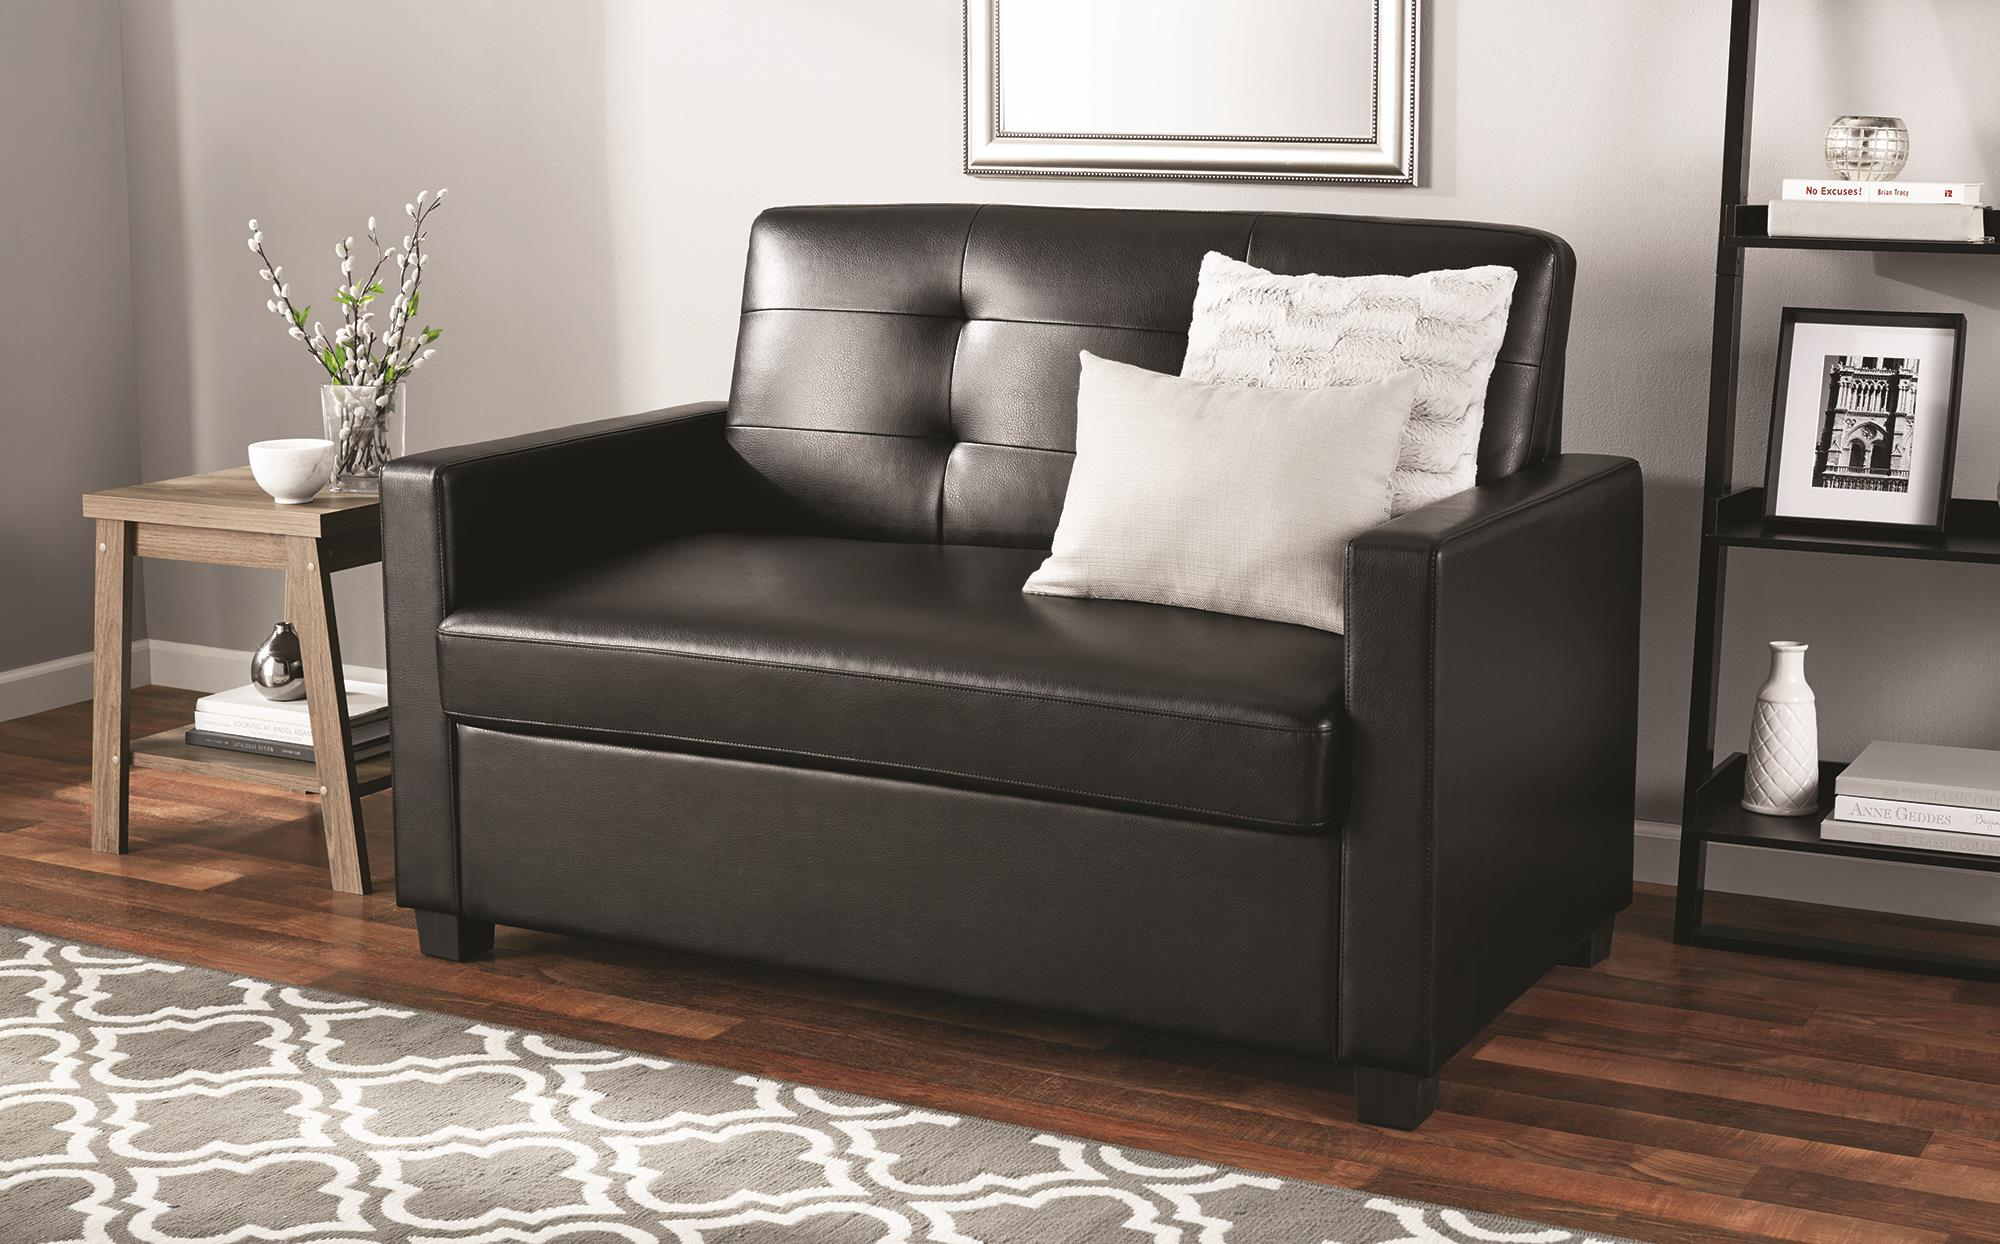 Good Mainstays Sleeper Loveseat With Memory Foam Mattress, Multiple Colors